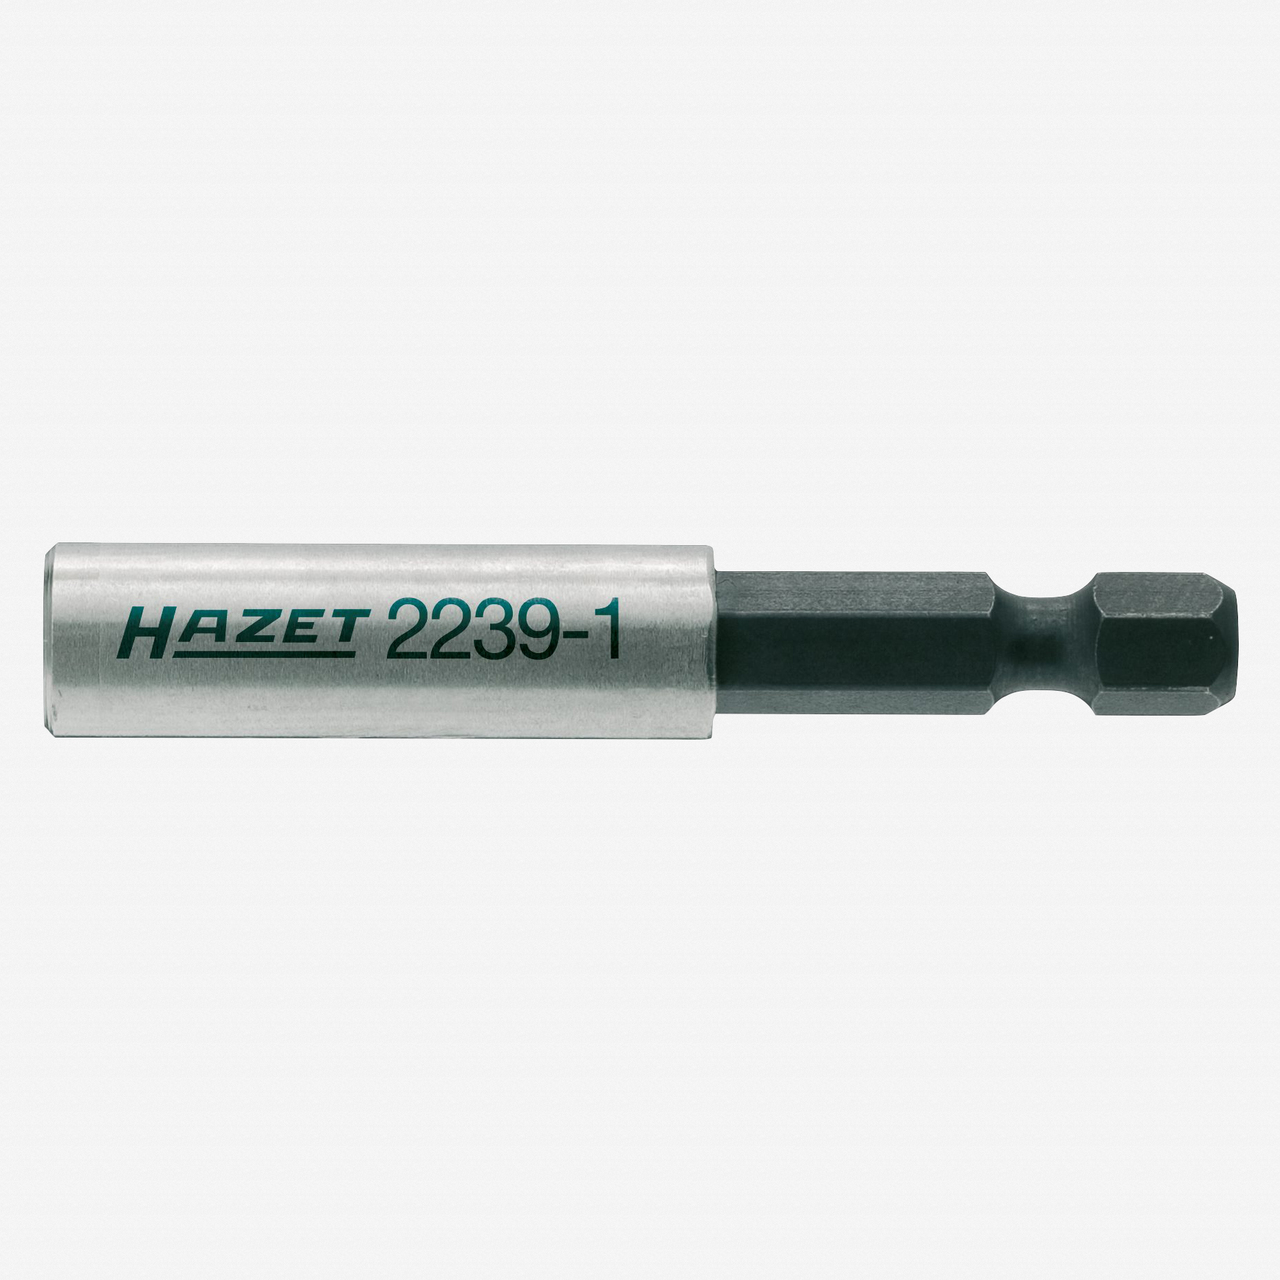 "Hazet 2239-1 1/4"" hex male to 1/4"" hex female Adapter - 60mm, Magnetic - KC Tool"